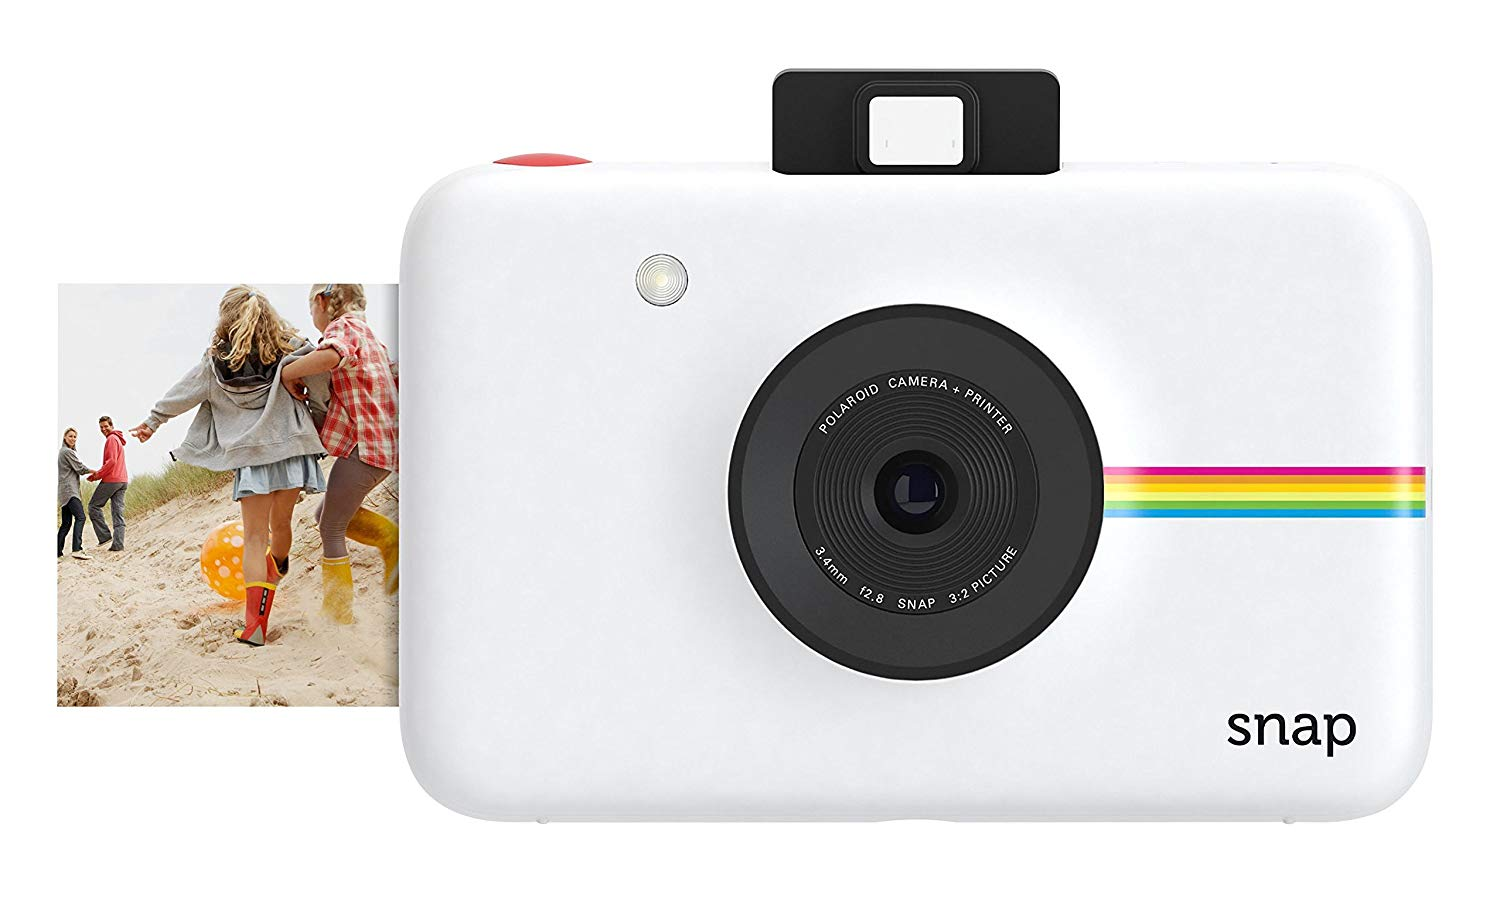 polaroid snap instant digital camera white with zink zero ink printing - Allshopathome-Best Price Comparison Website,Compare Prices & Save